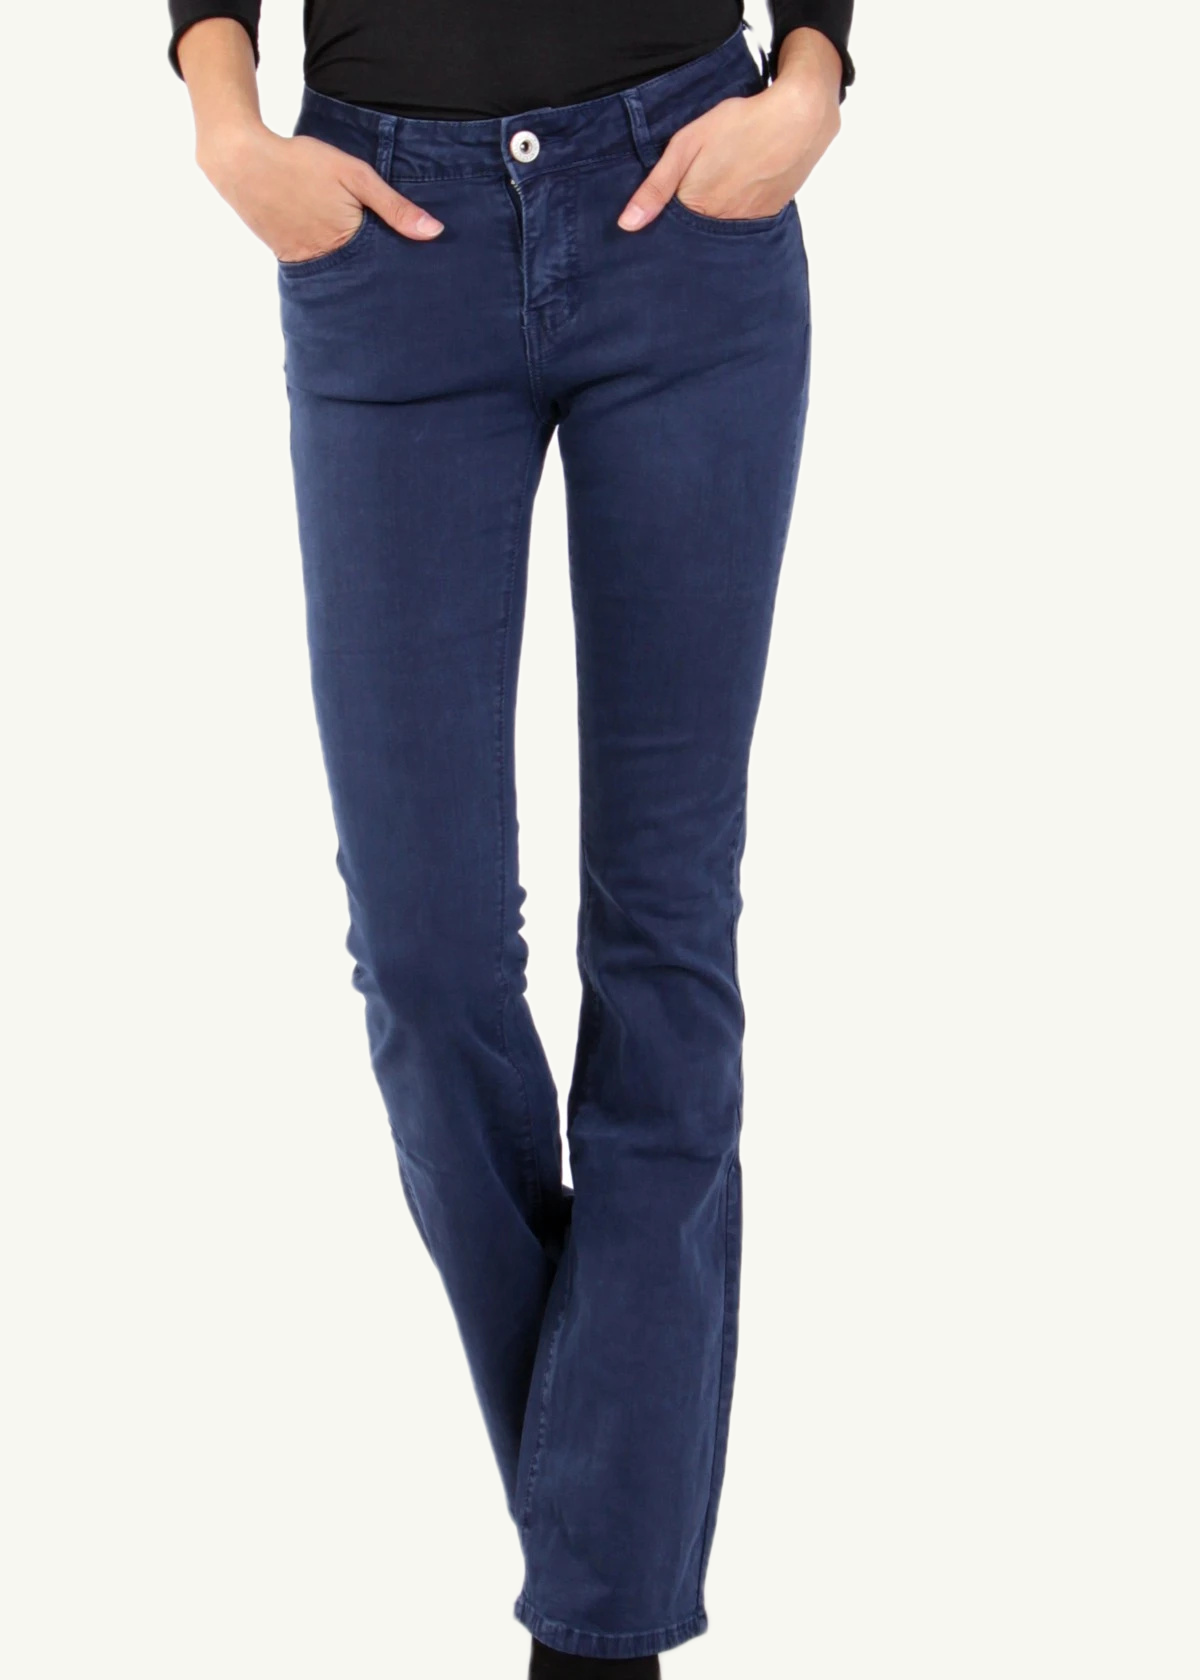 REGINE - Flared Jeans - Indigo